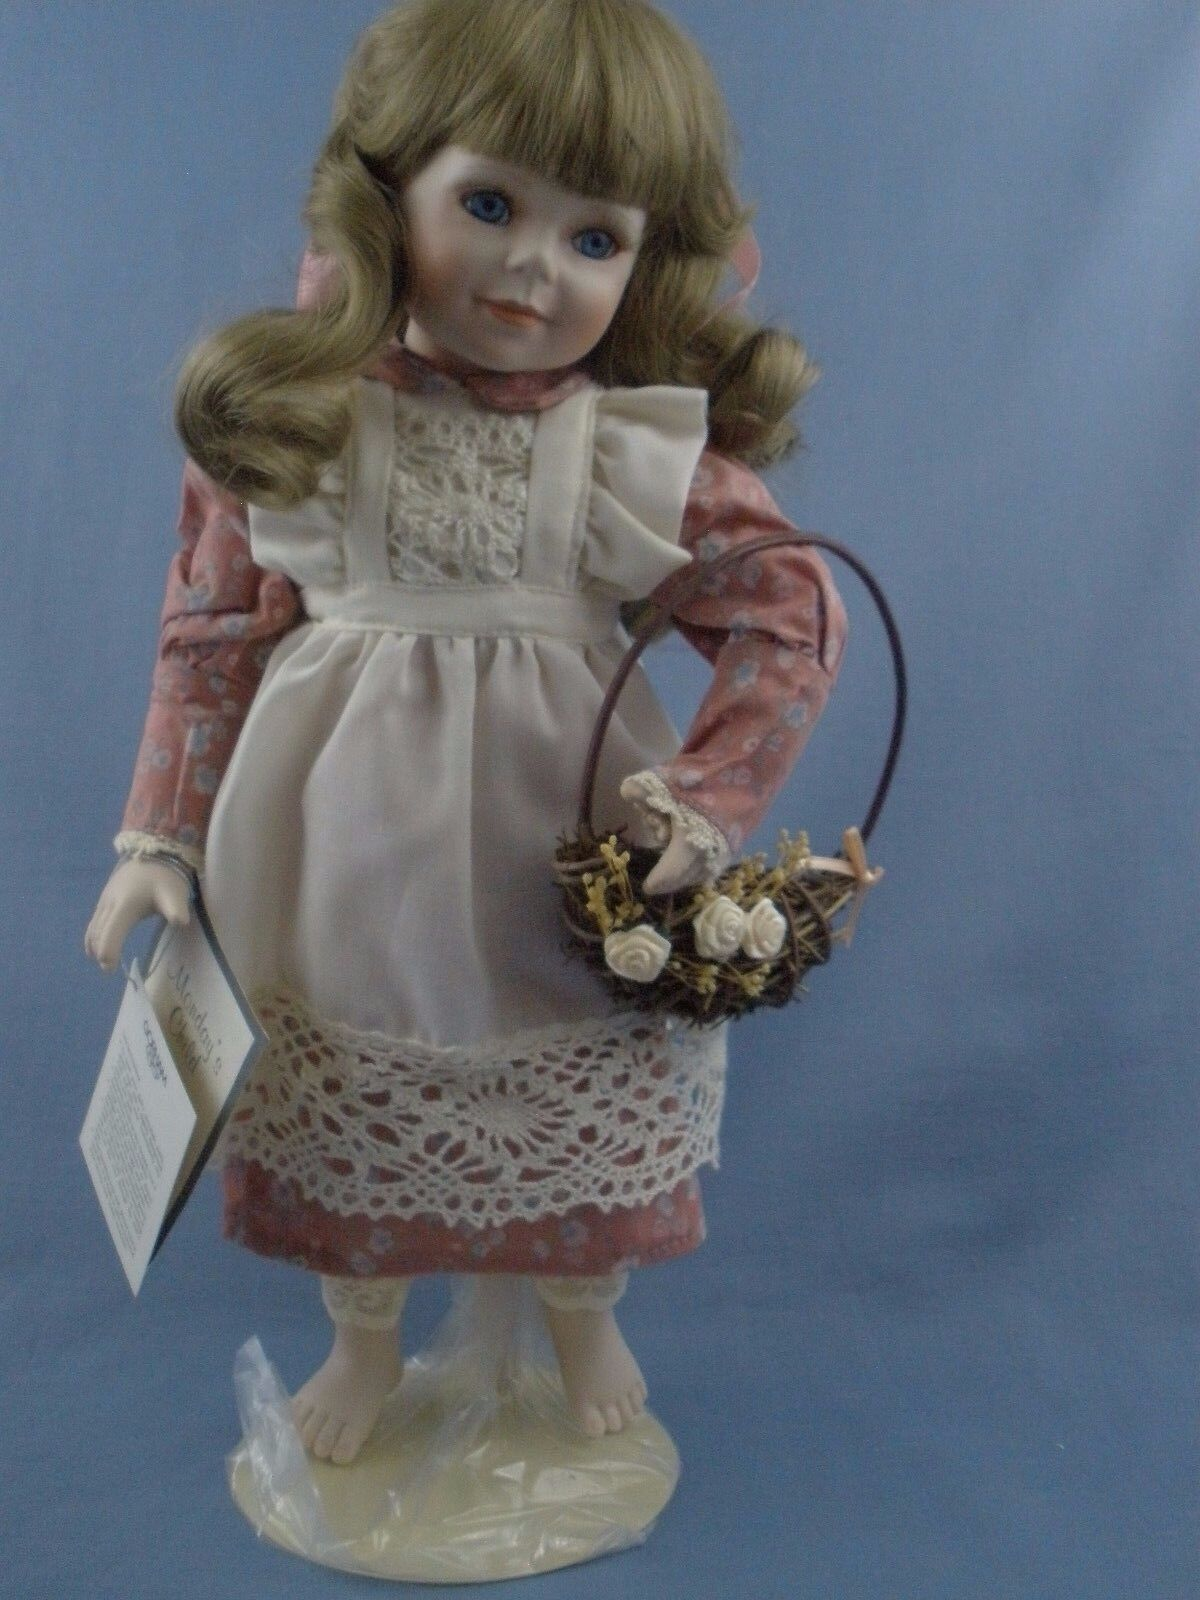 Gorham Days of the Week Monday Porcelain Doll